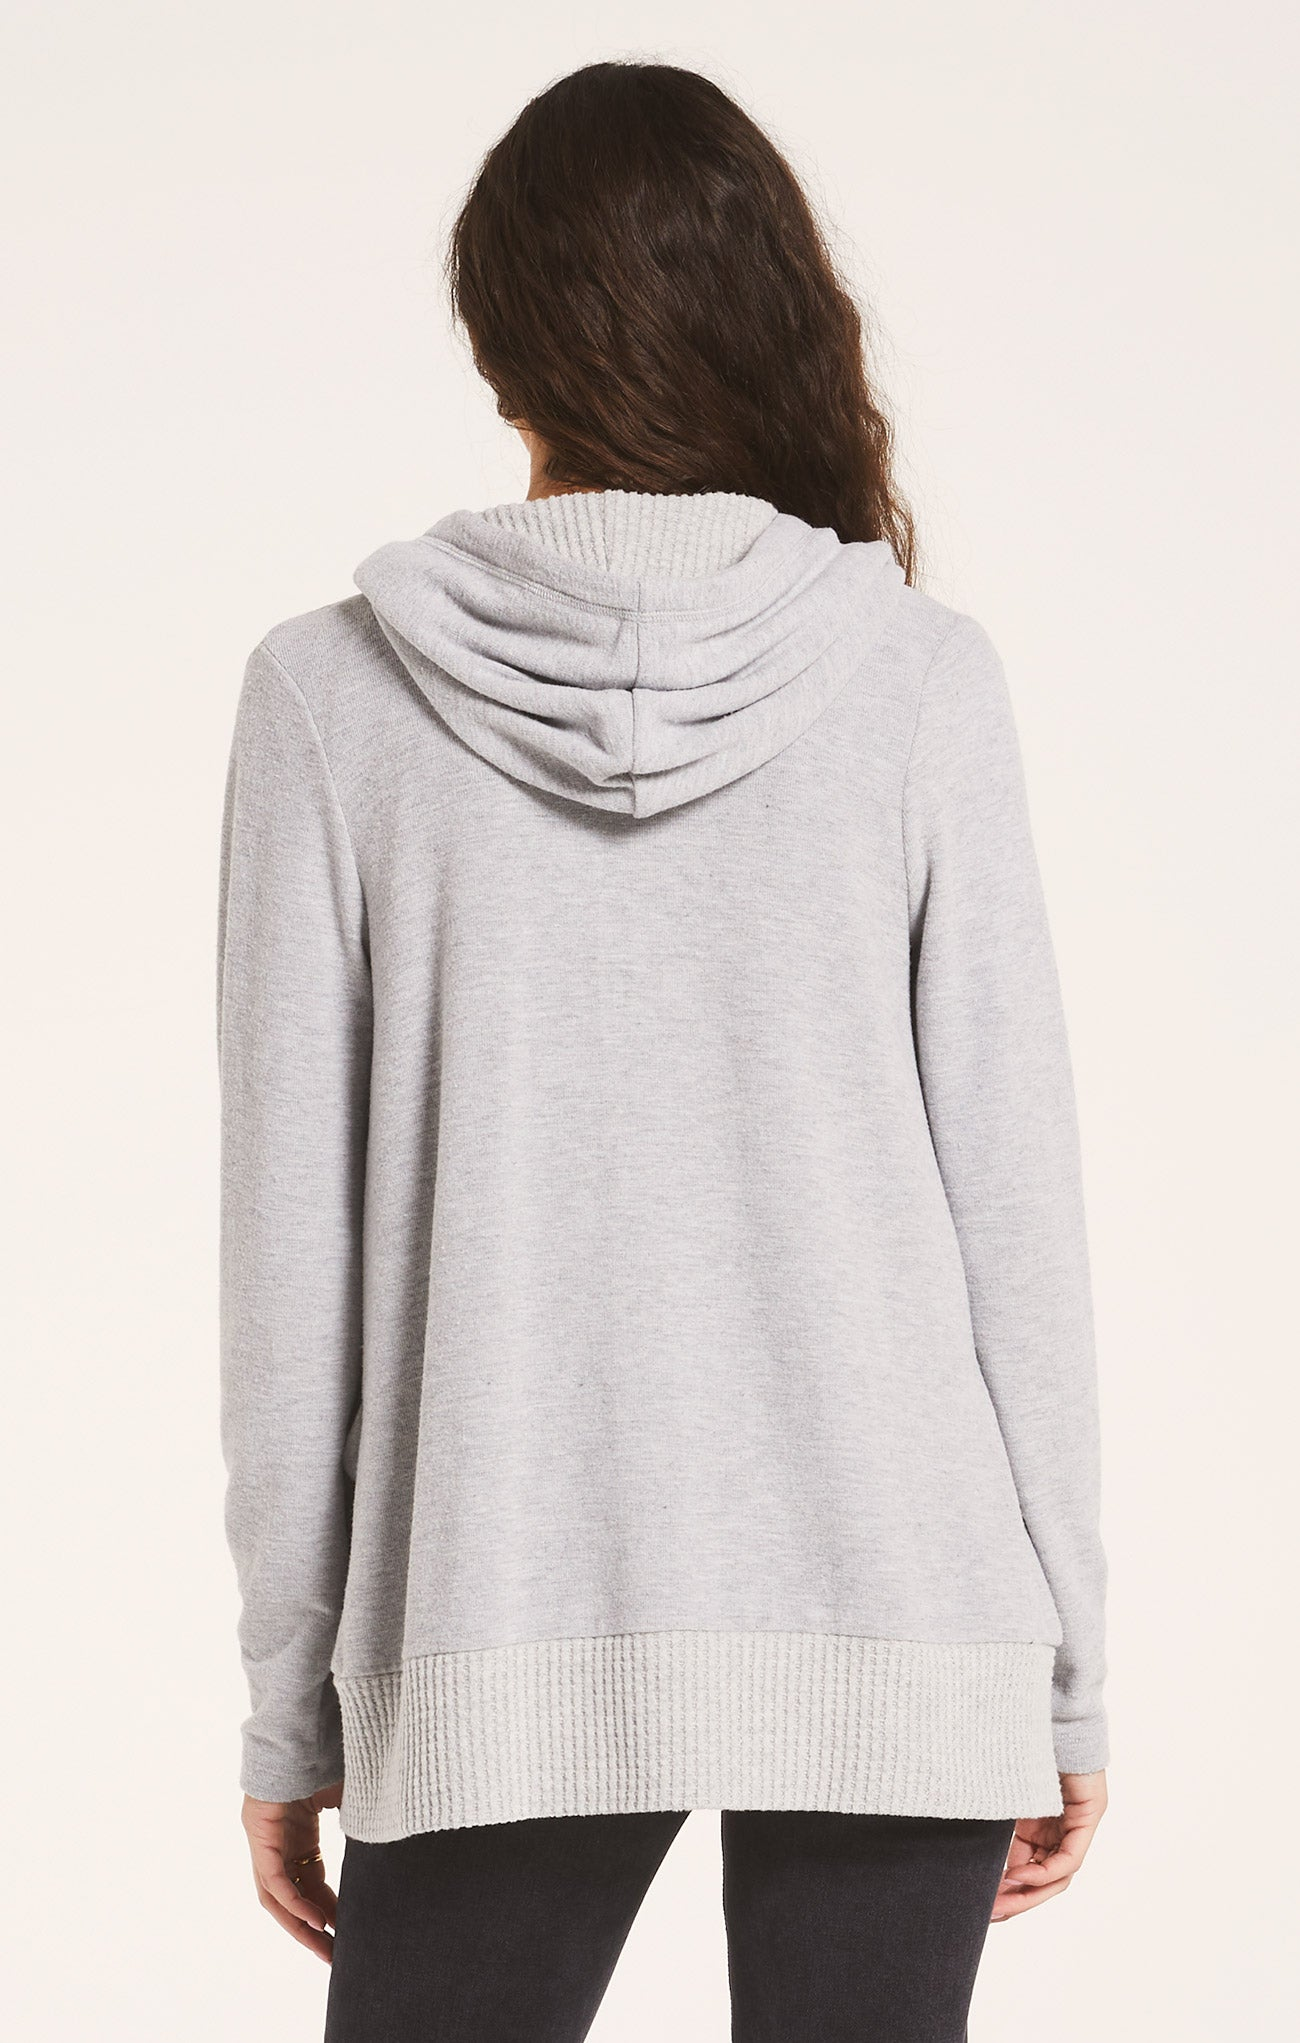 Sweaters The Thermal Lined Soft Spun Cardigan Heather Grey